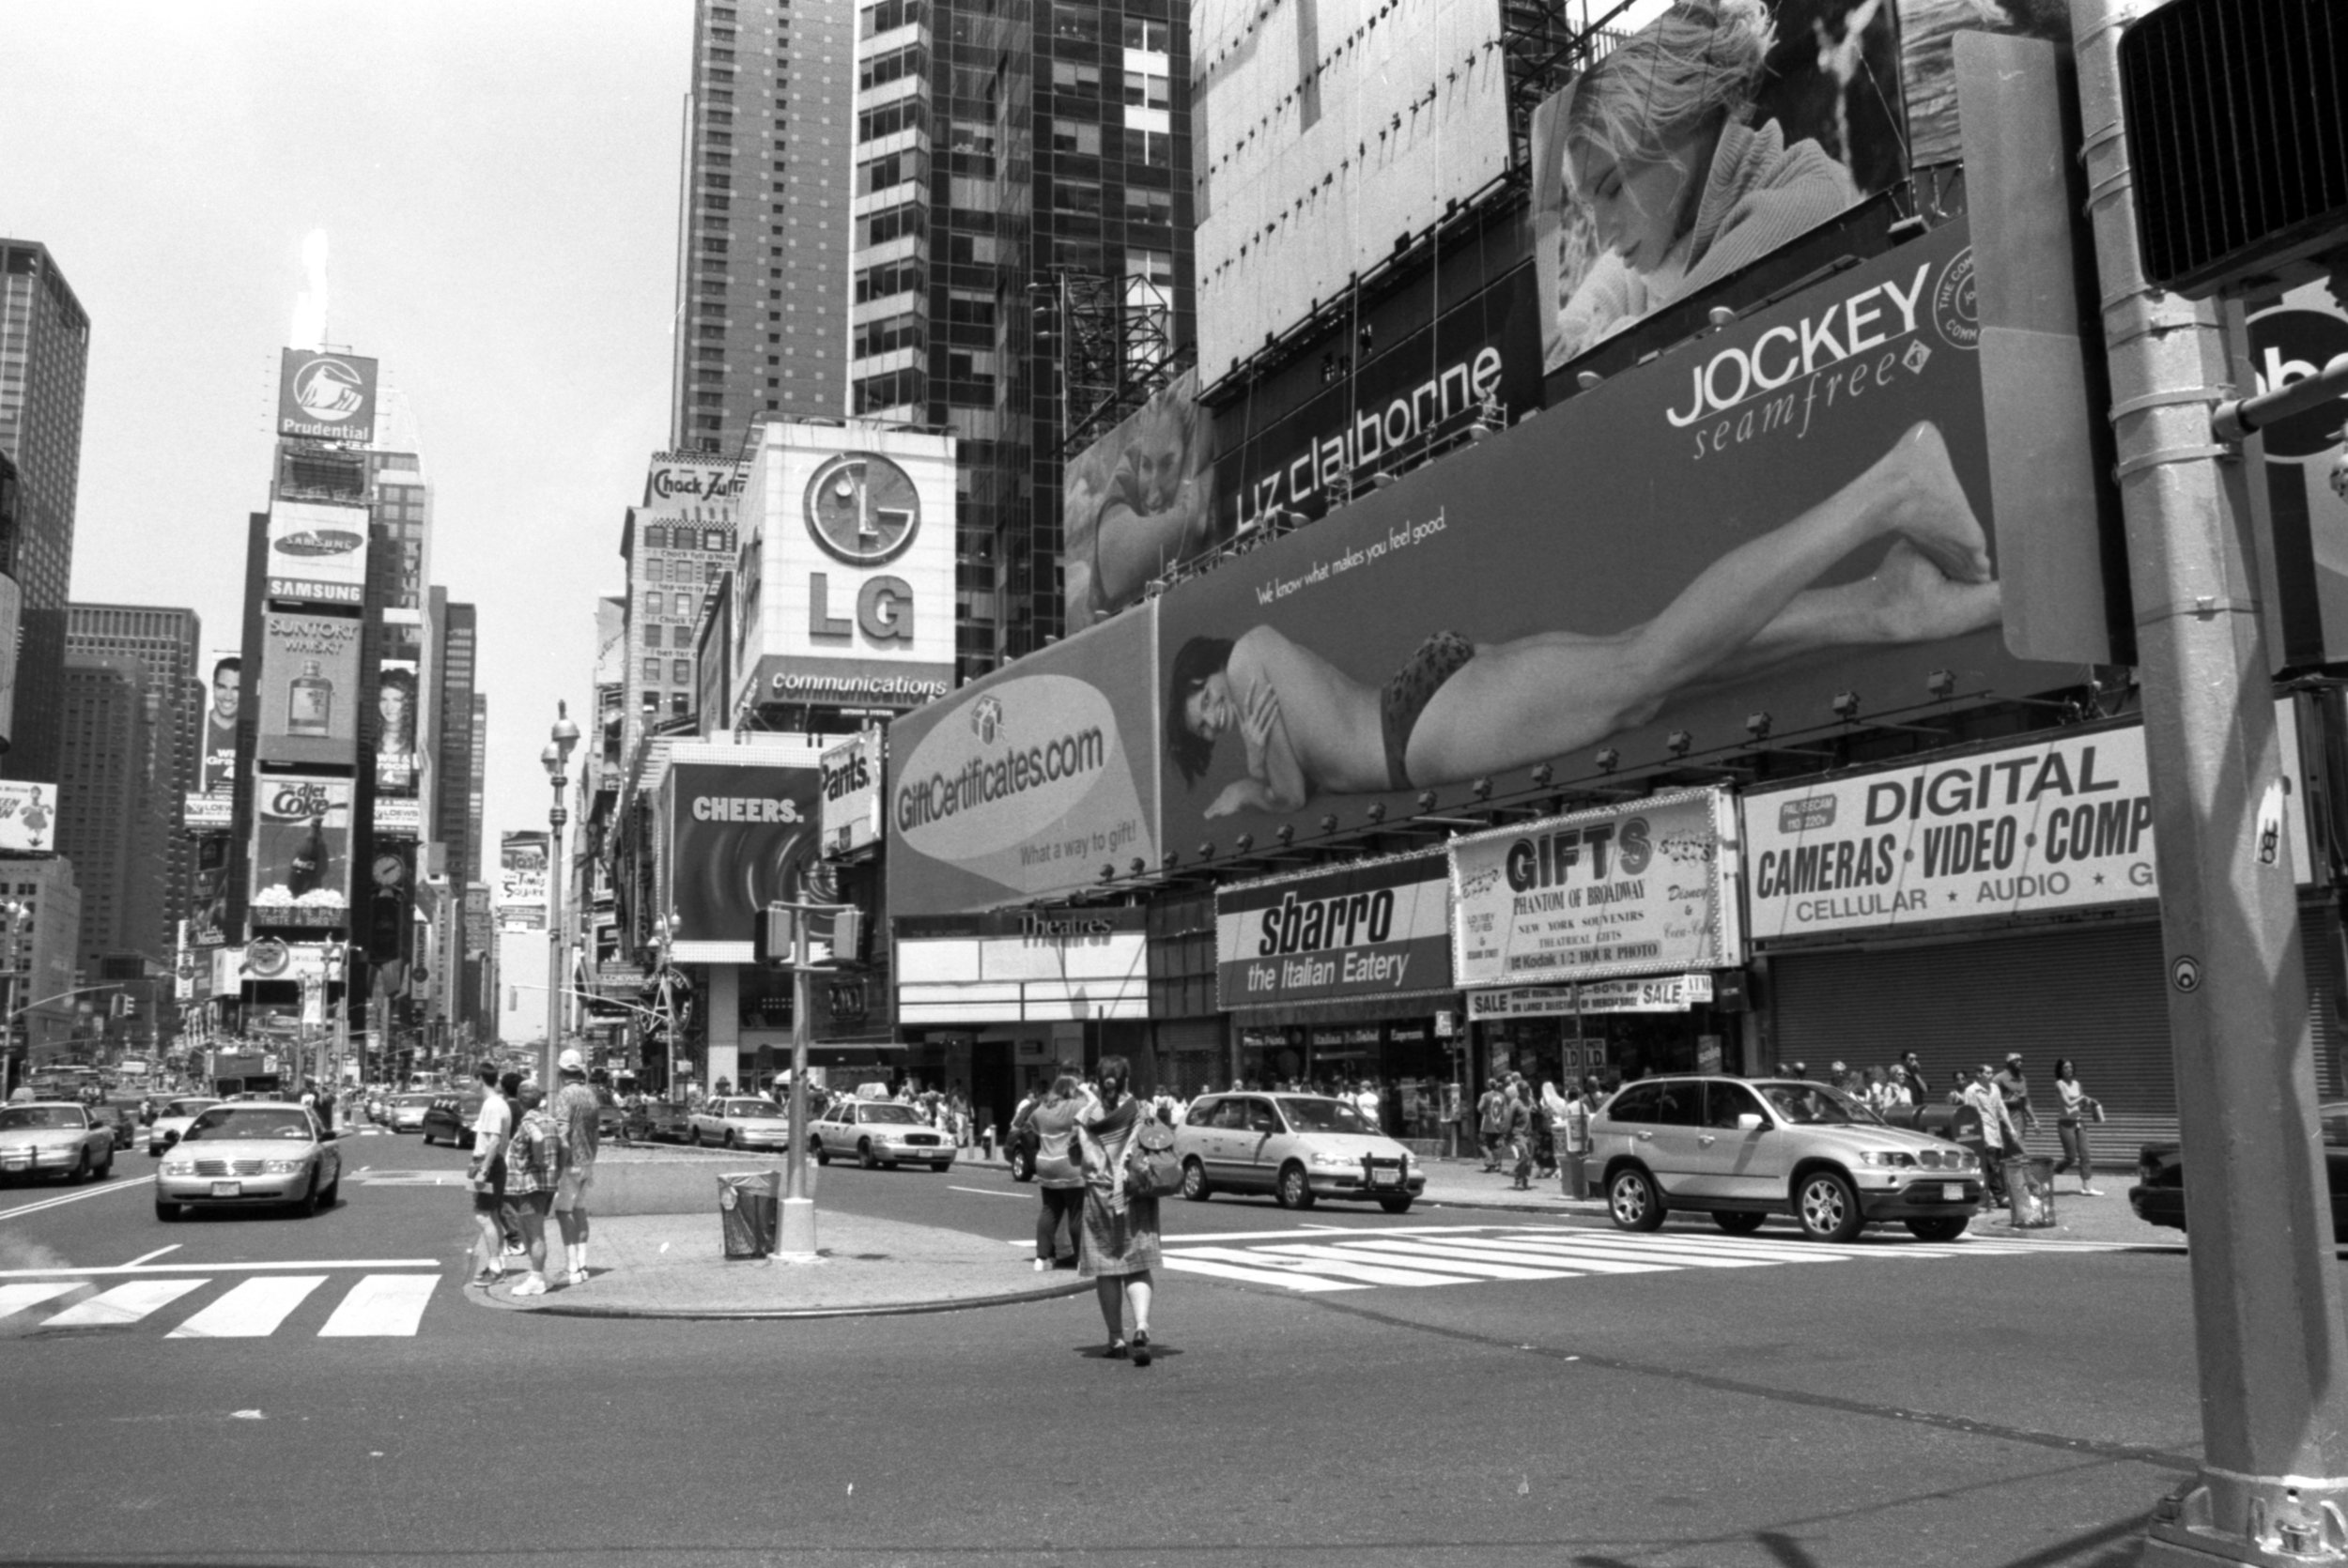 Times Square | 44th Street & 7th Ave, New York NY